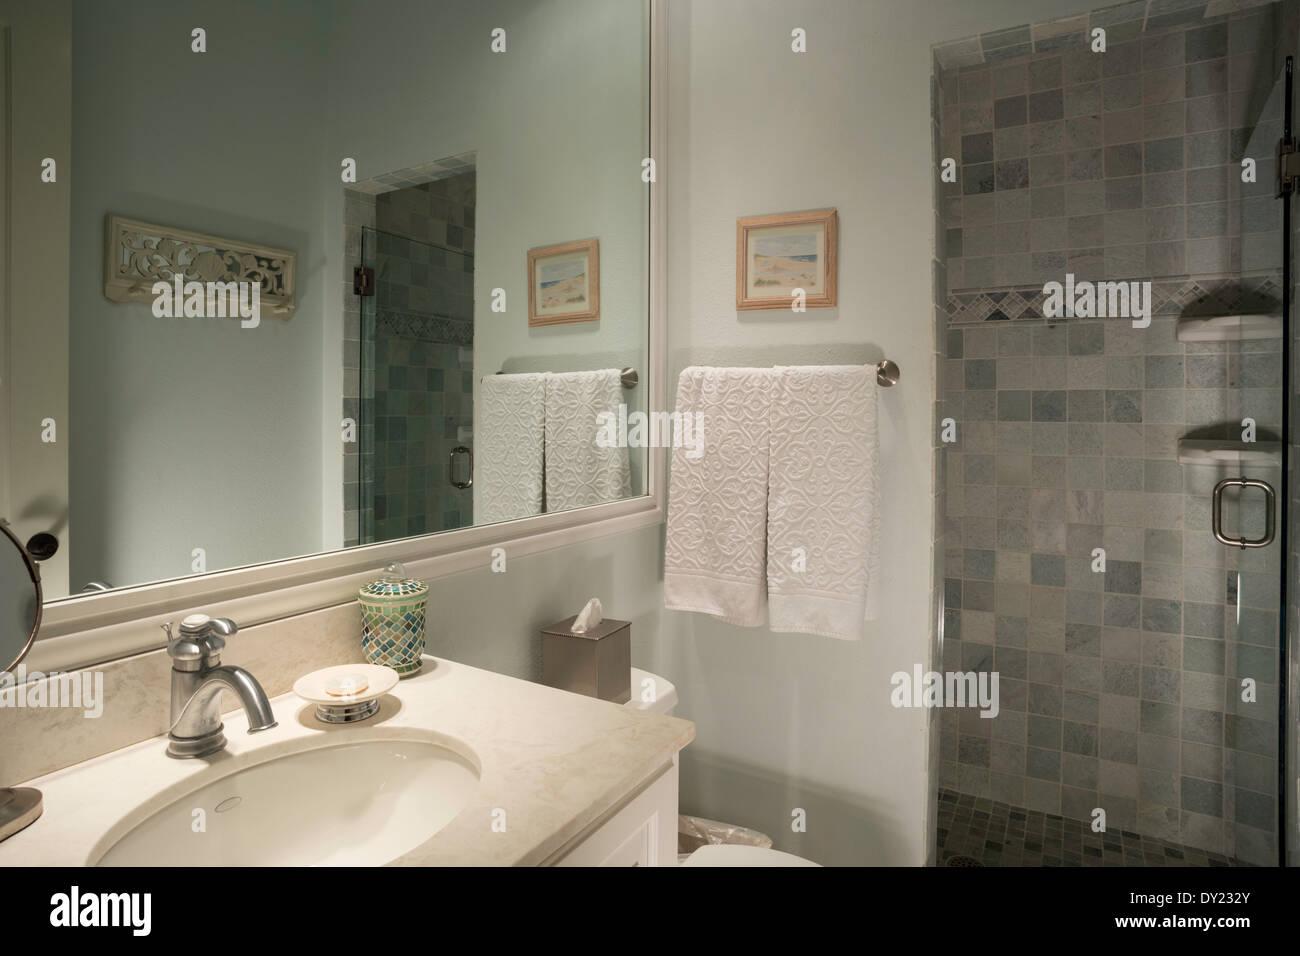 Clean And Tidy White Bathroom With Glass Shower Stall Door